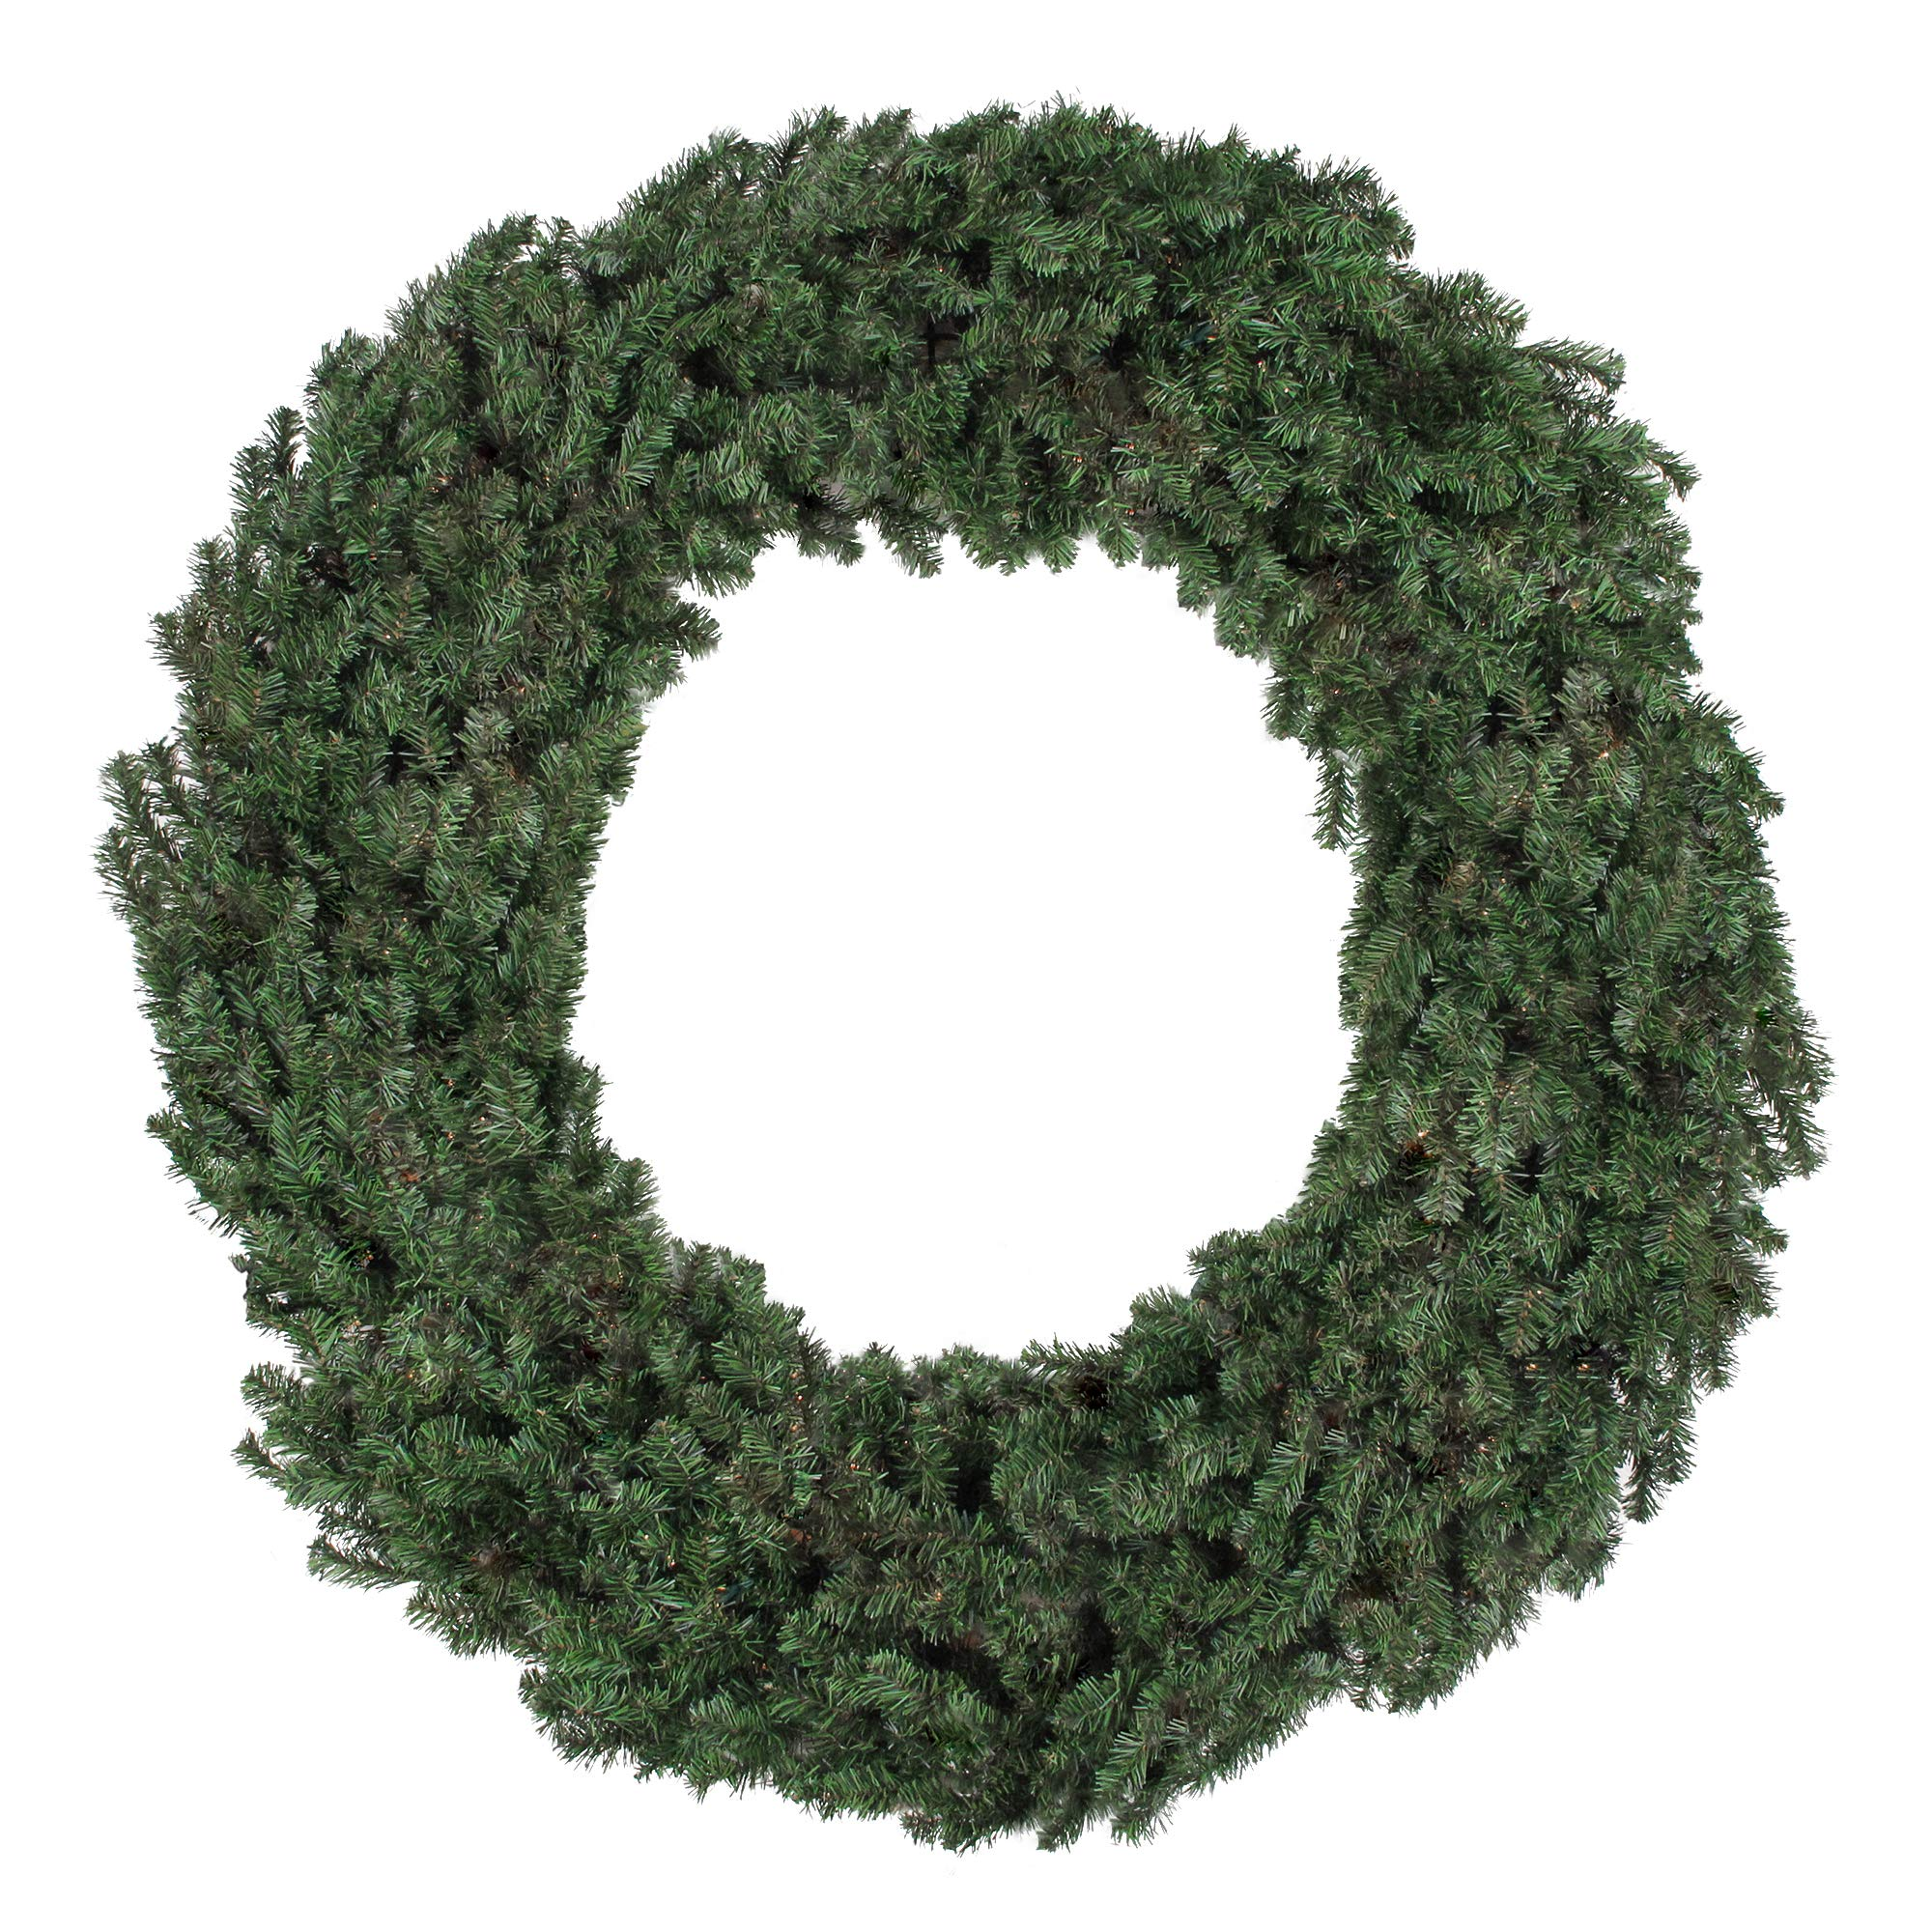 Northlight 60'' Commercial Size Canadian Pine Artificial Christmas Wreath - Unlit